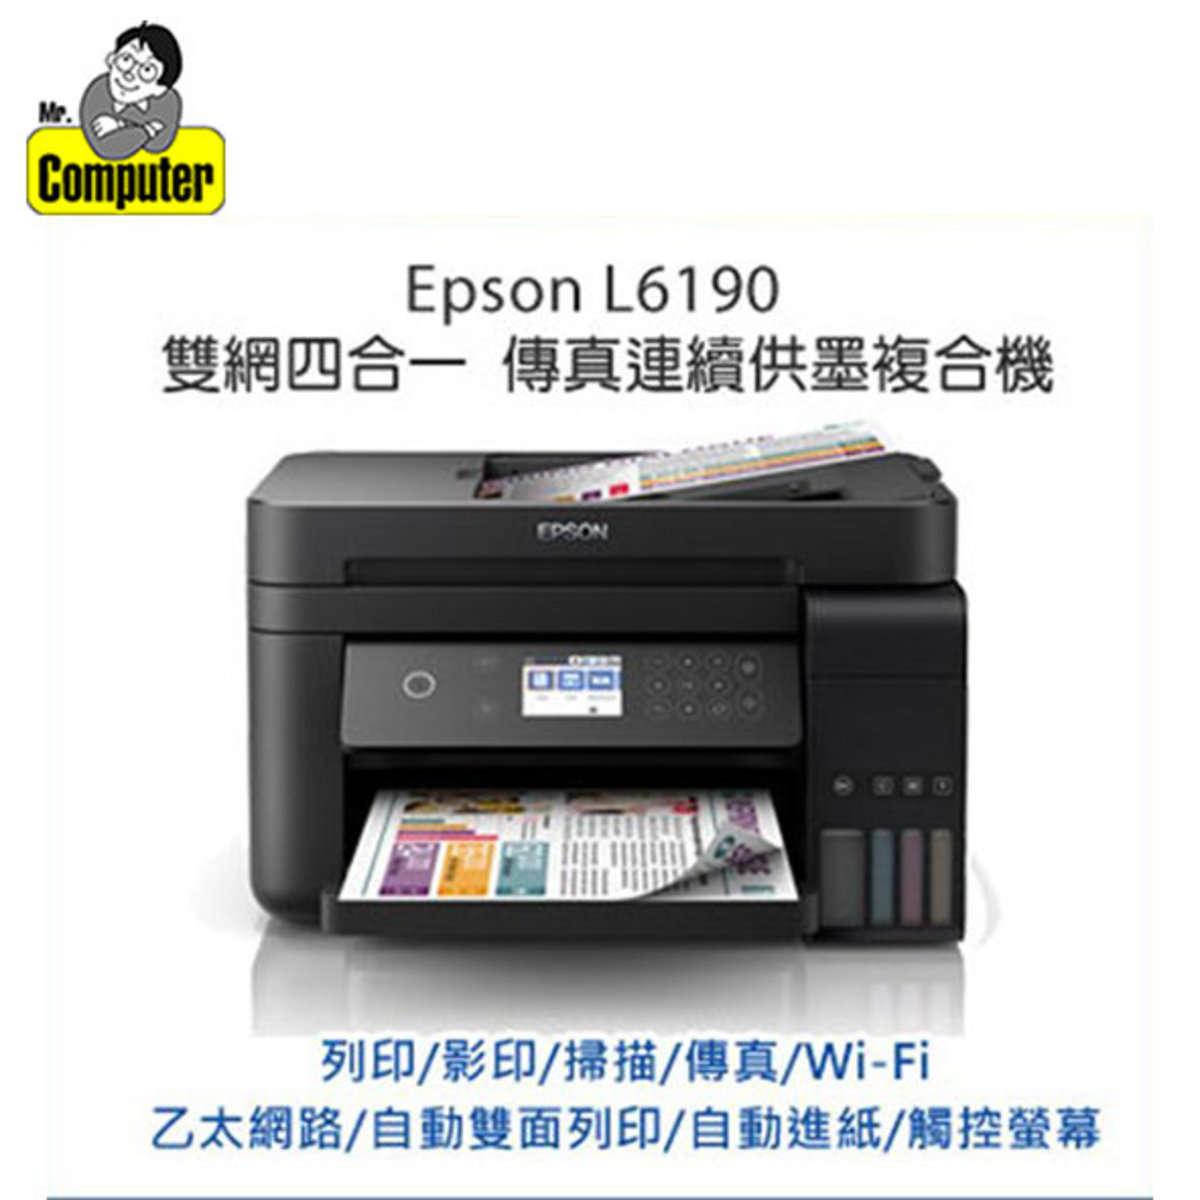 EcoTank L6190 Color Inkjet Printer with Refill Ink Tank System